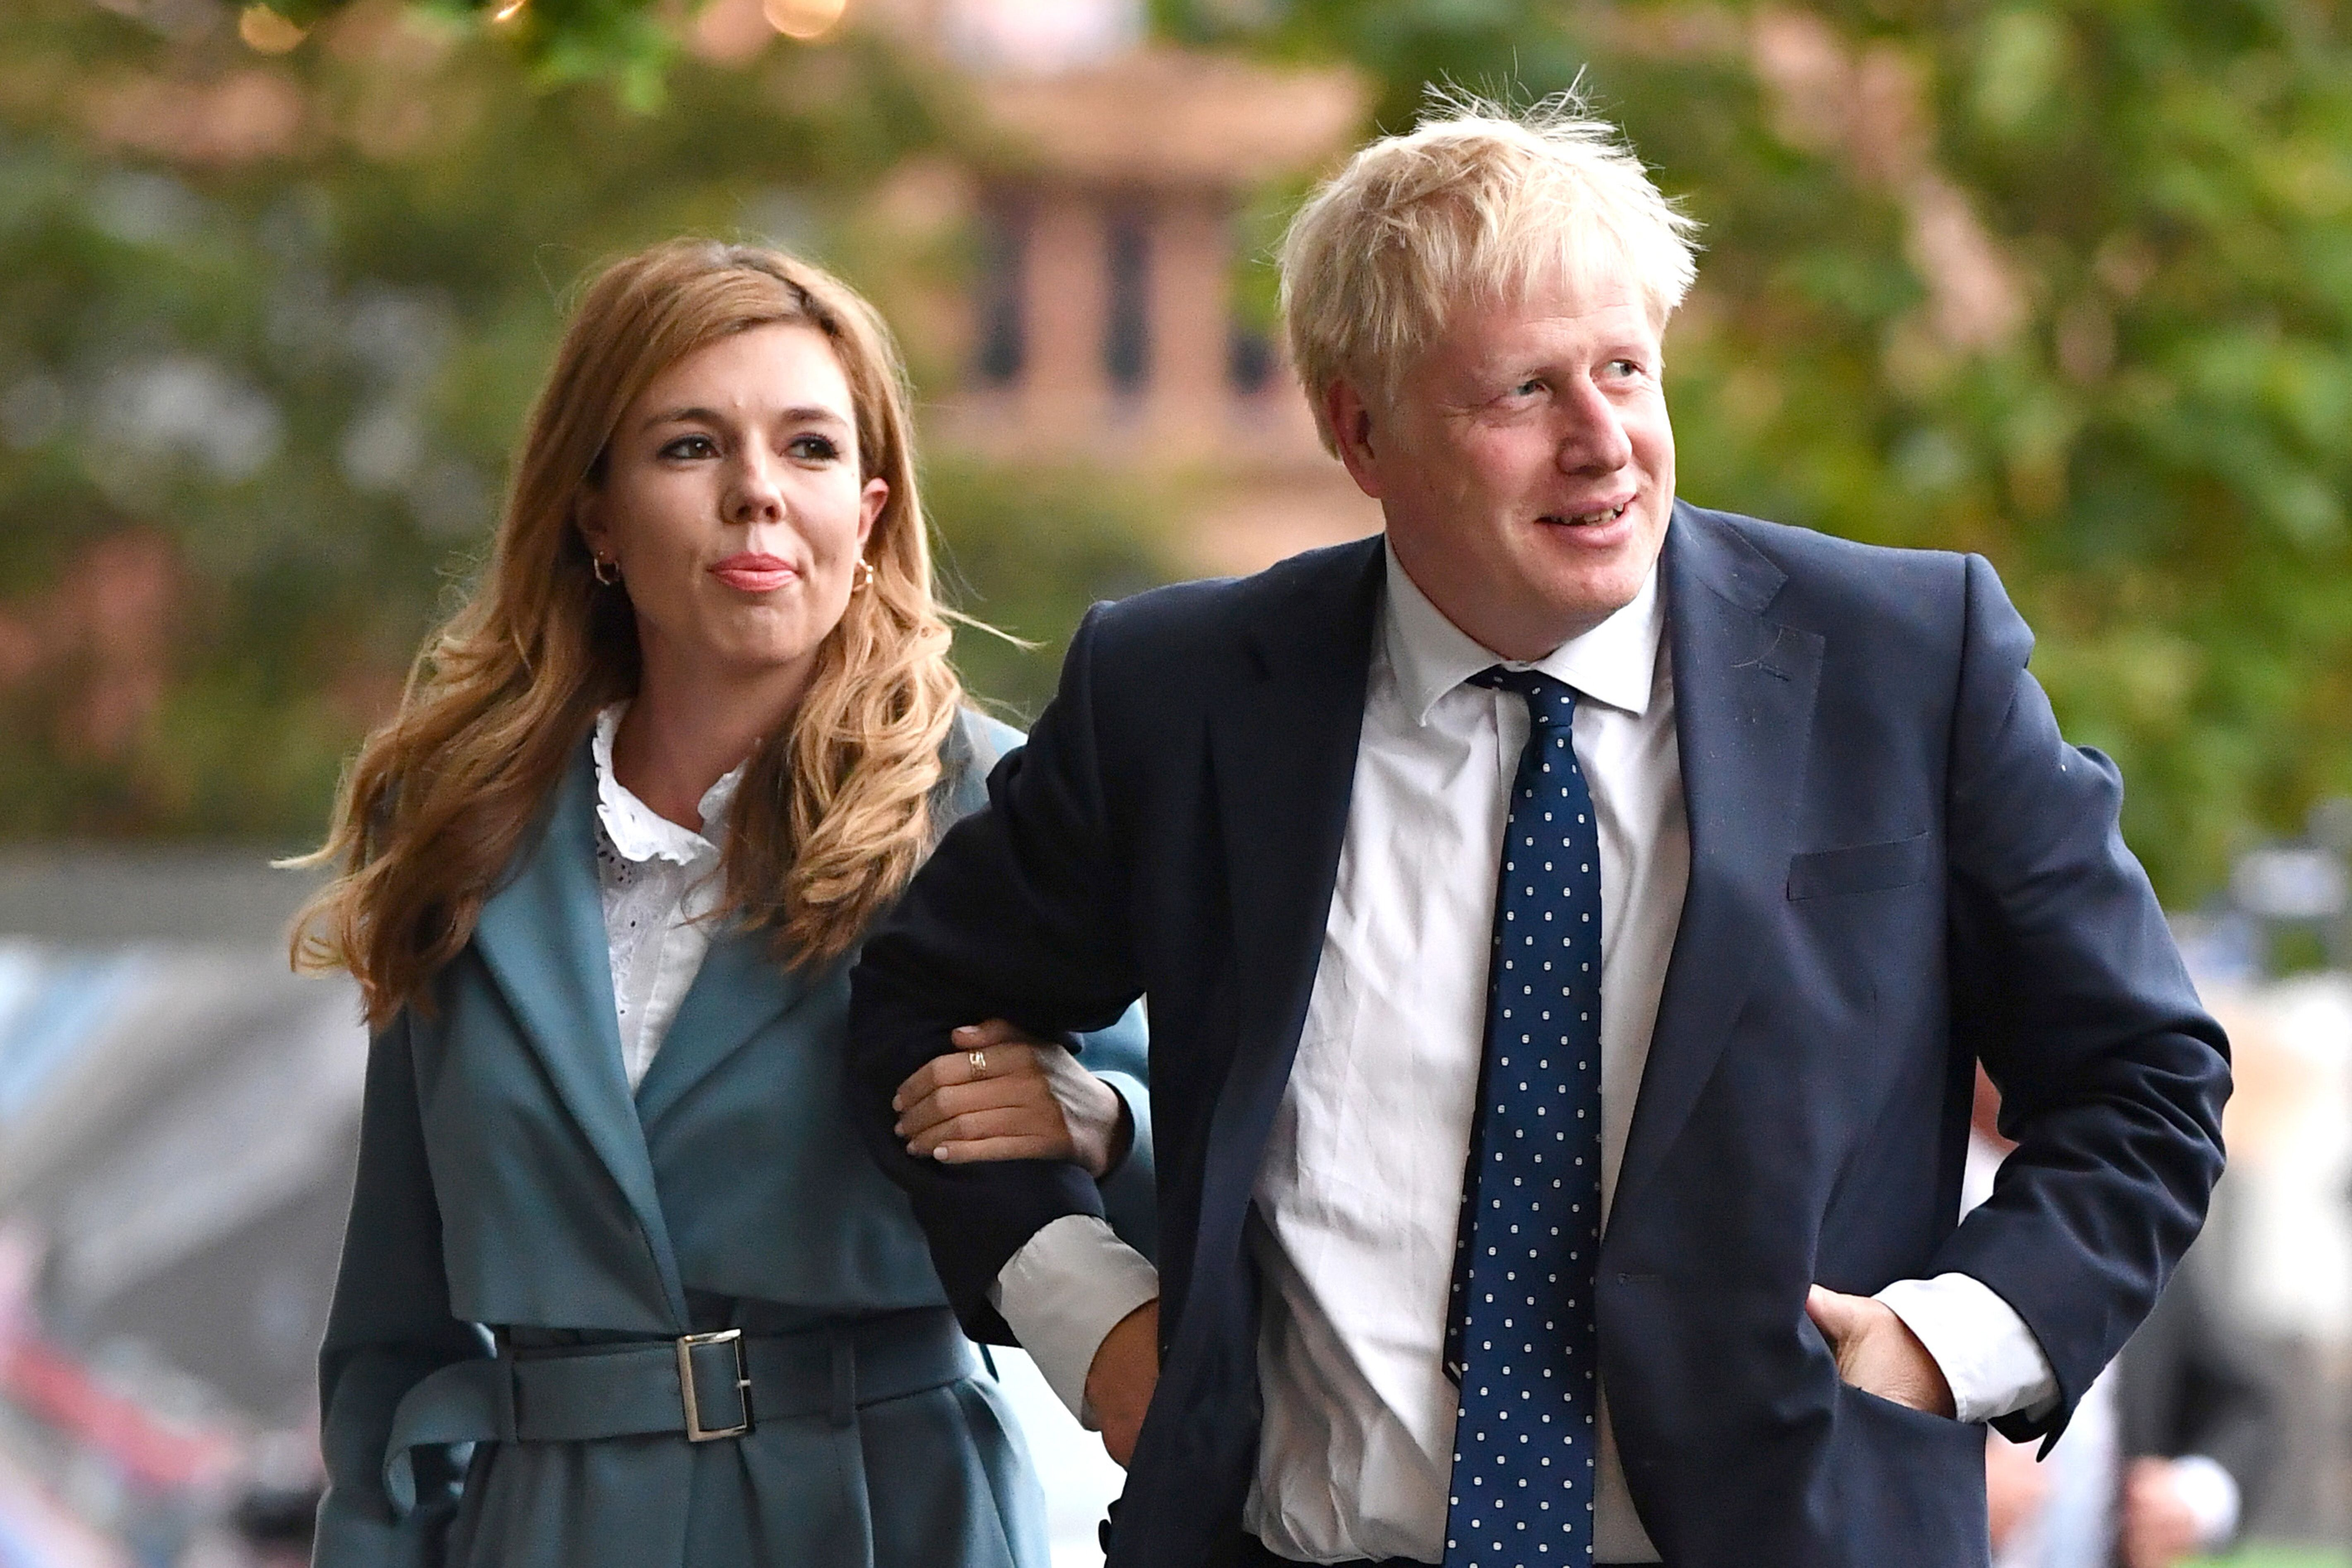 Carrie Symonds and Boris Johnson at the Conservative Party Conference on September 28, 2019, in Manchester, England | Photo: Getty Images